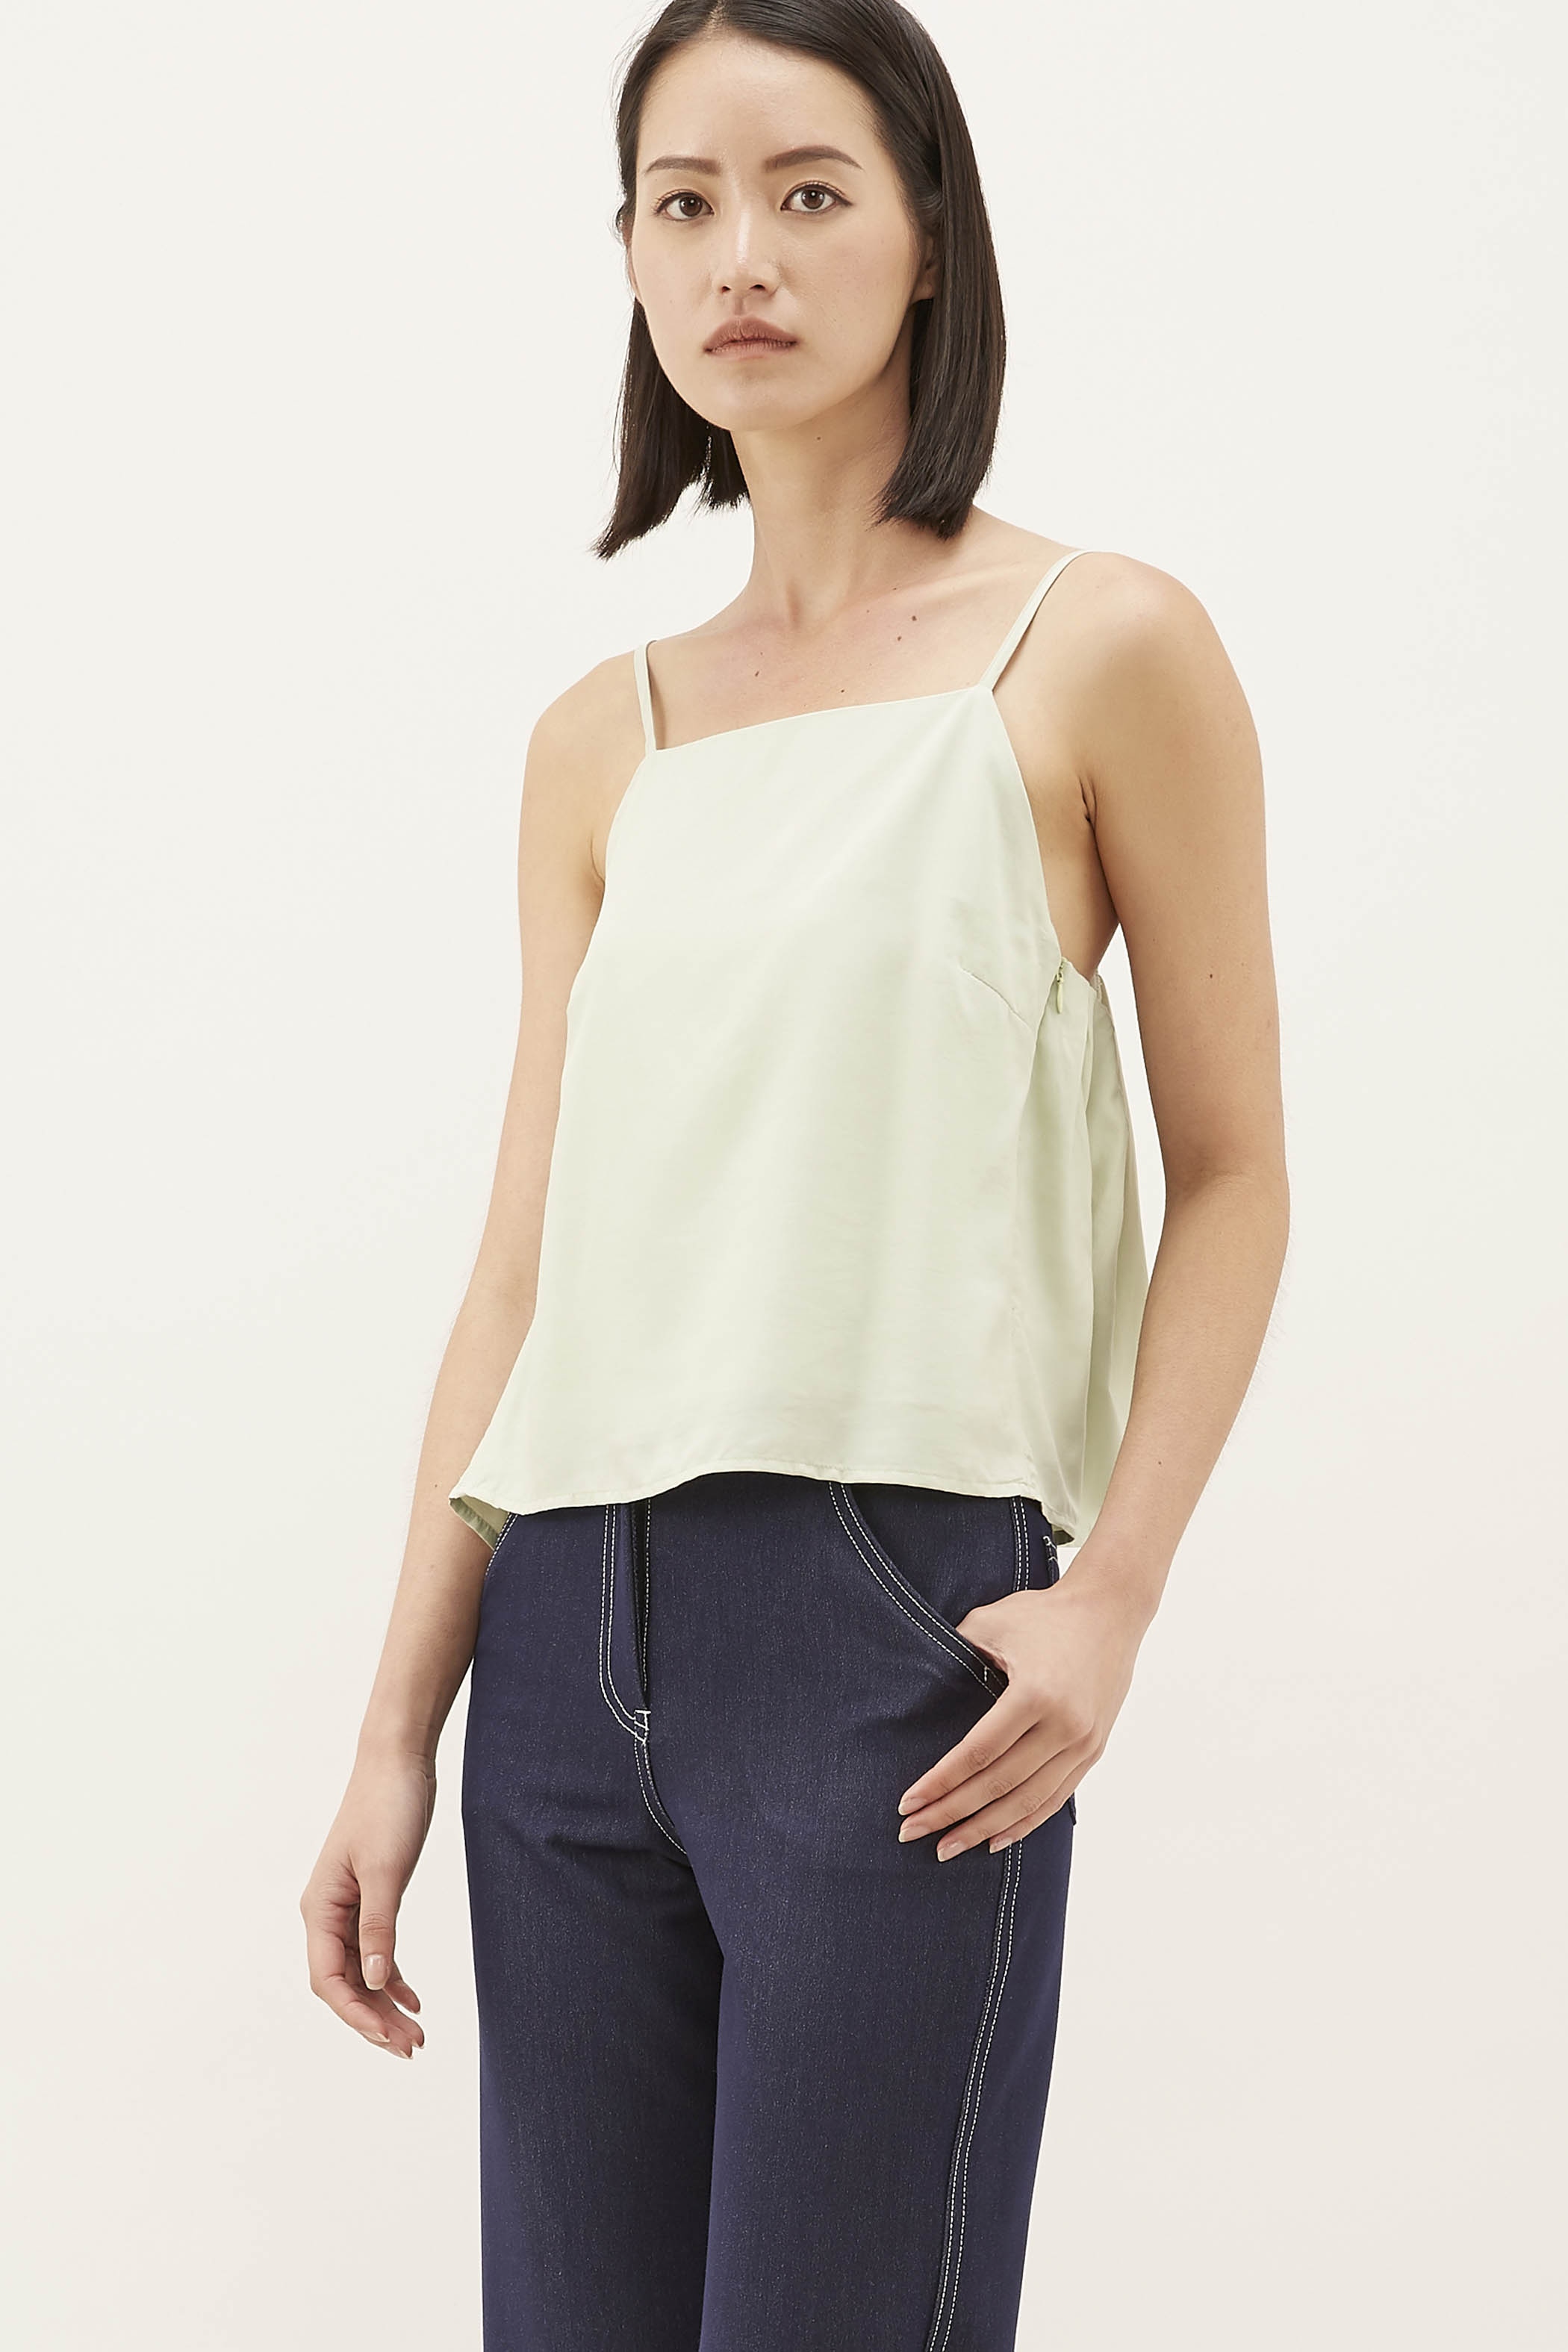 Eleora Angular Tank Top